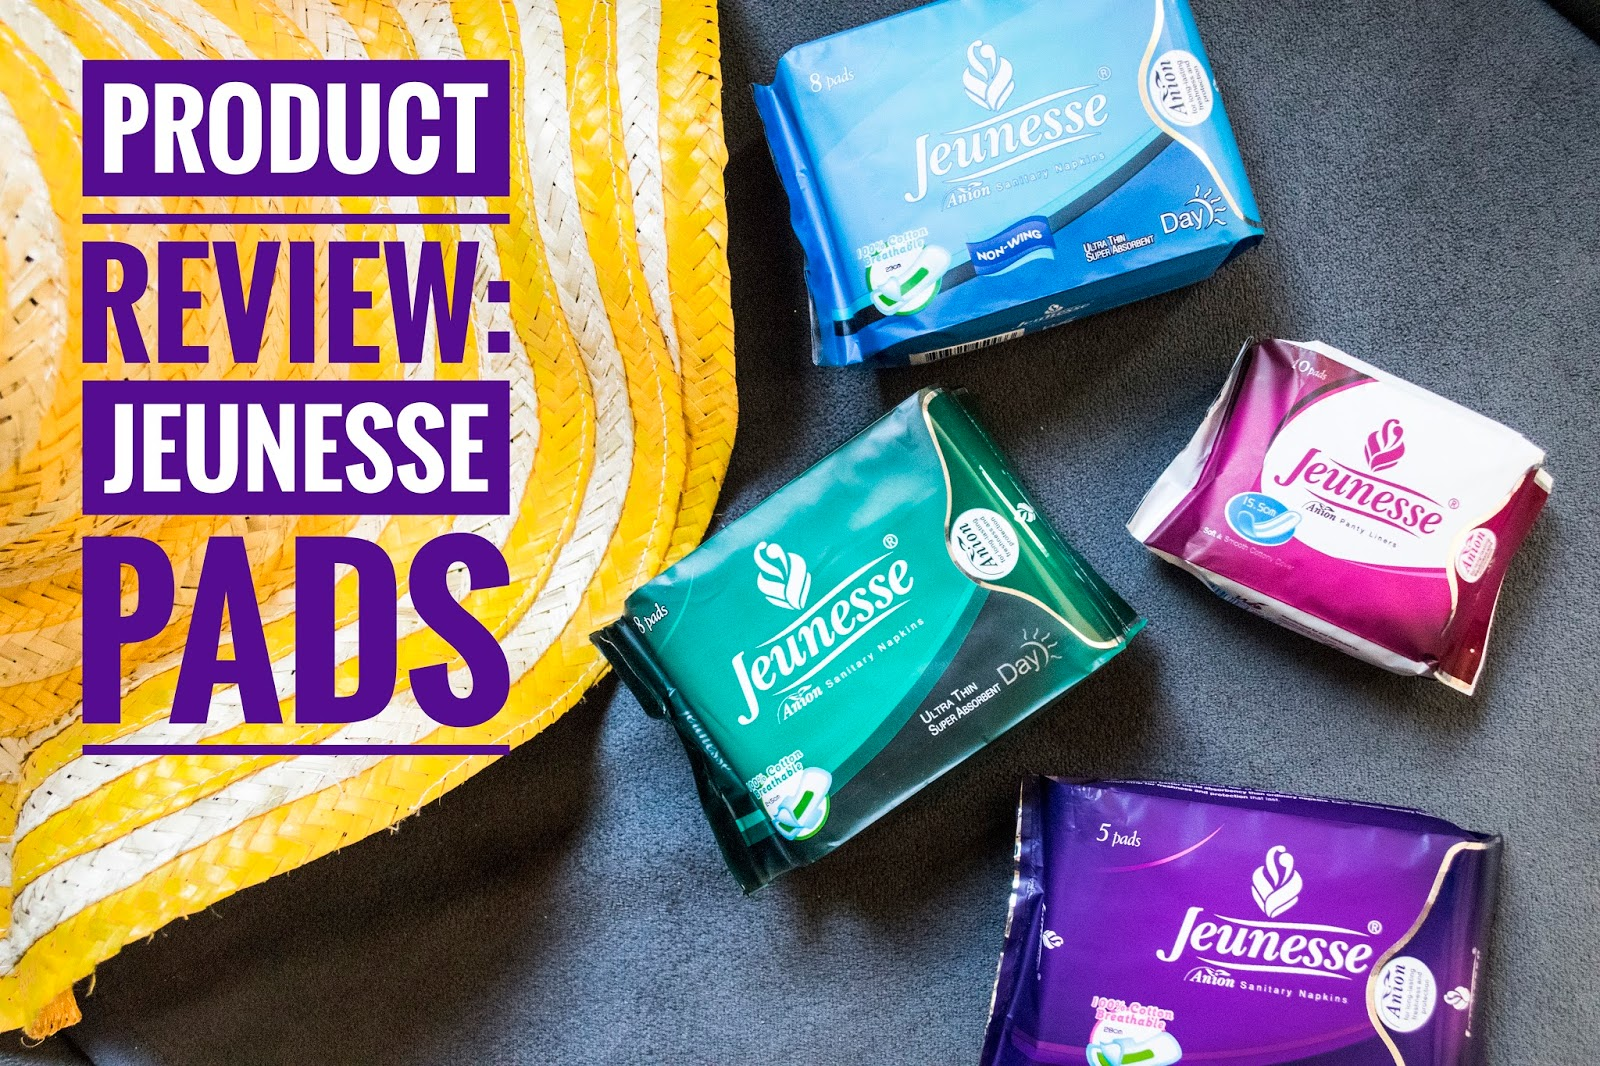 Product Review on Jeunesse Pads